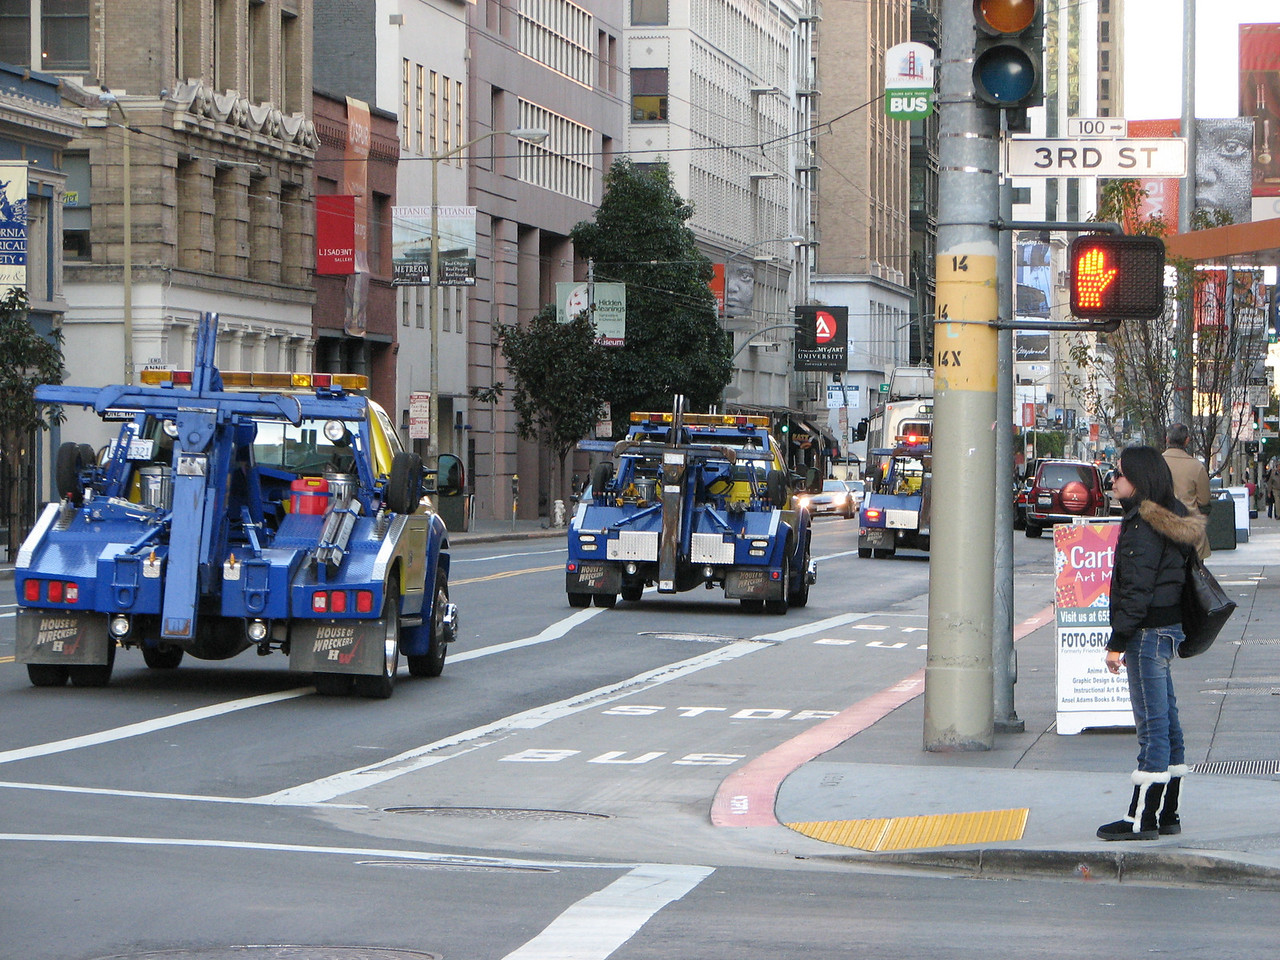 2007 01 12 Fri - SF downtown financial district rush hour - Army of tow trucks led by meter maid